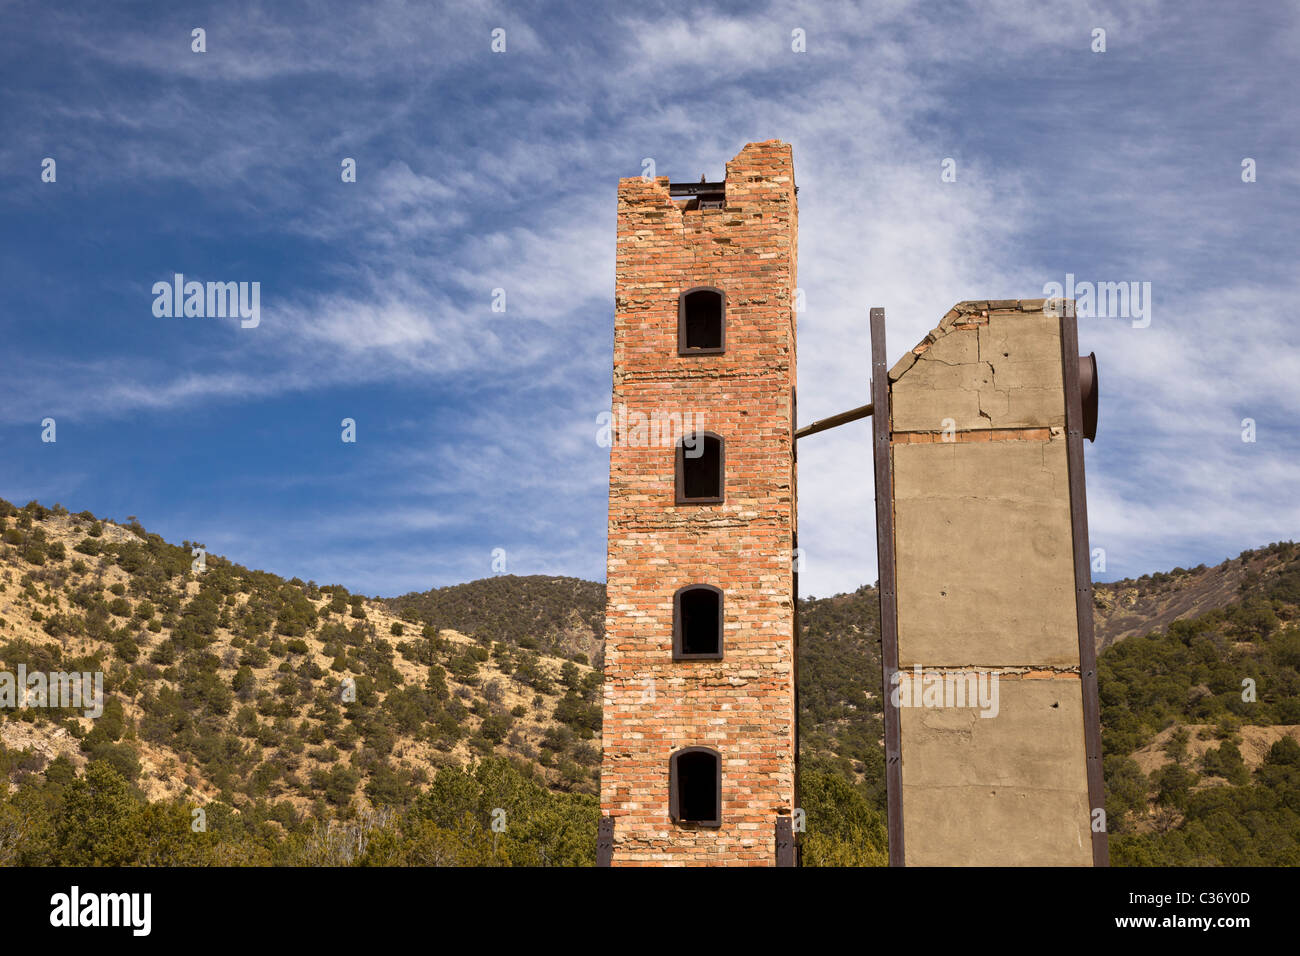 New mexico socorro county magdalena - Stock Photo Towering Smelter Oven And The Magdalena Mountains At The Kelly Mine Ghost Town In Socorro County New Mexico Usa